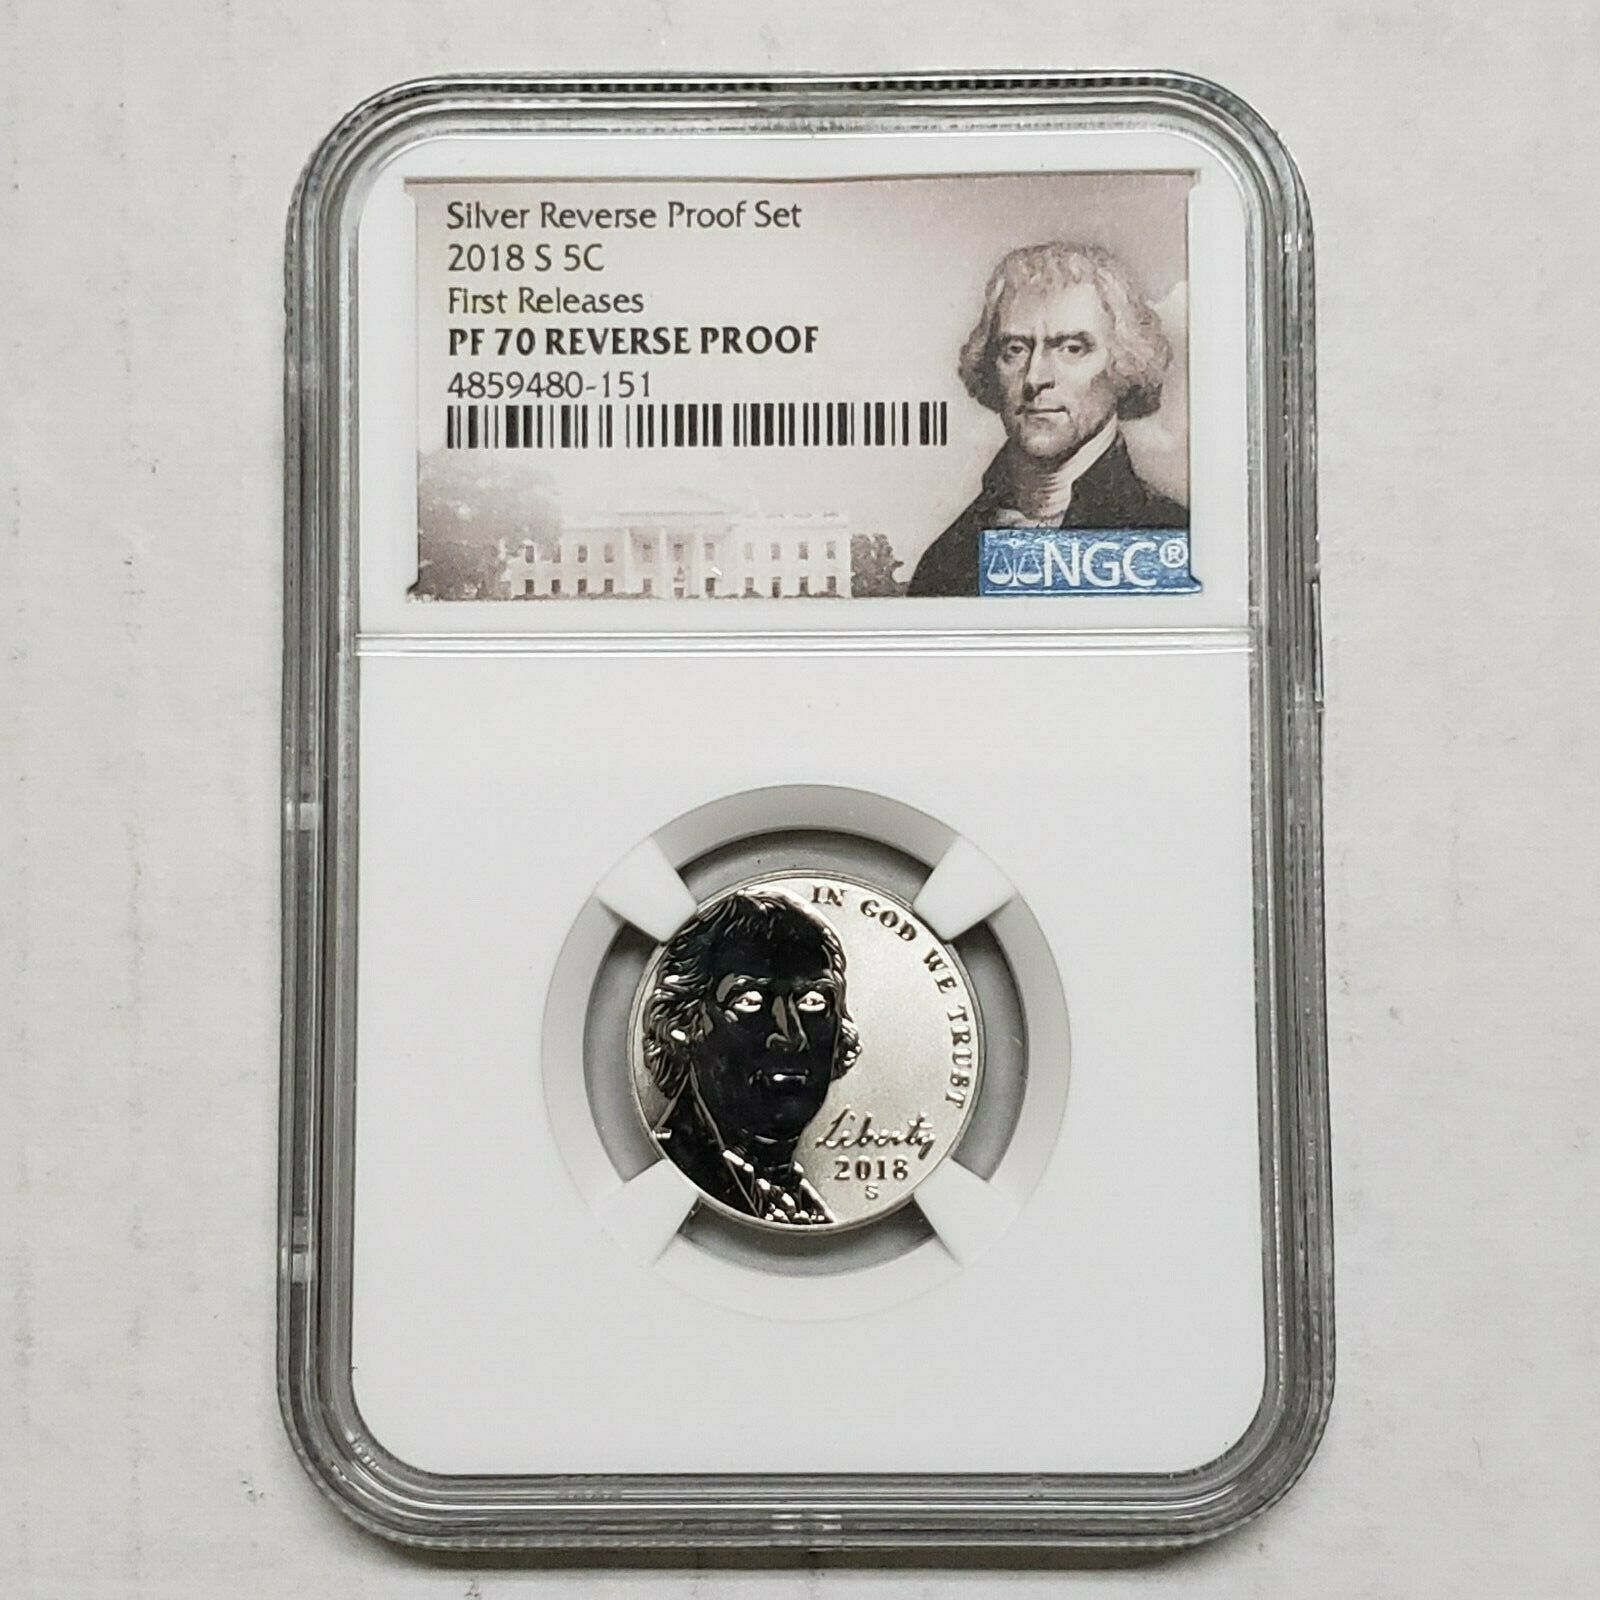 2018 S Nickel NGC PF70 From Silver REVERSE PROOF Set First Releases SKU C17